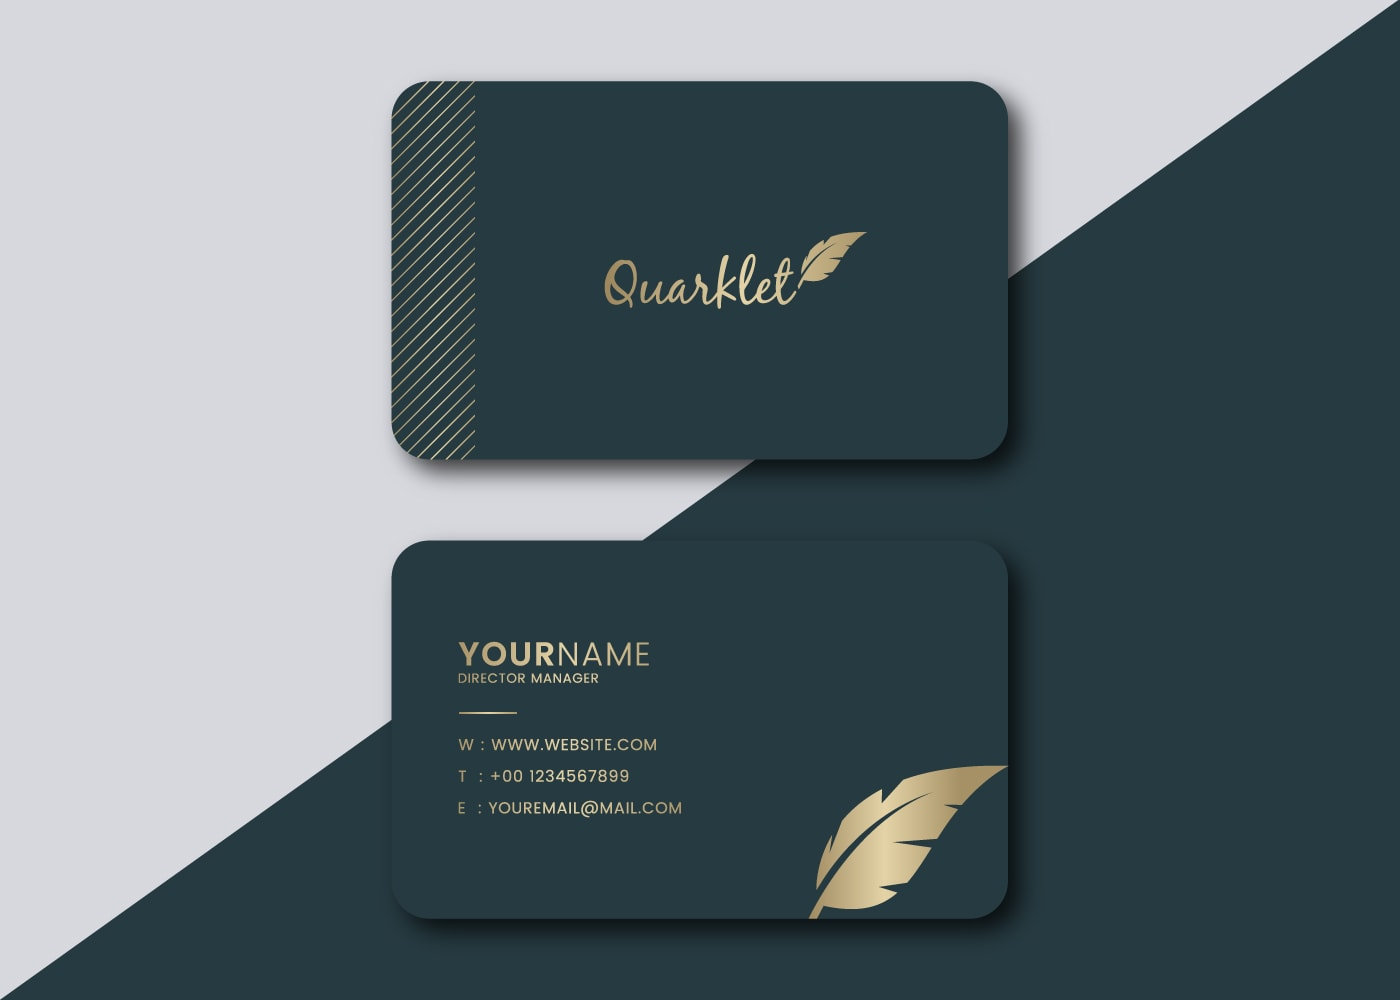 I will do minimalist business card design for you